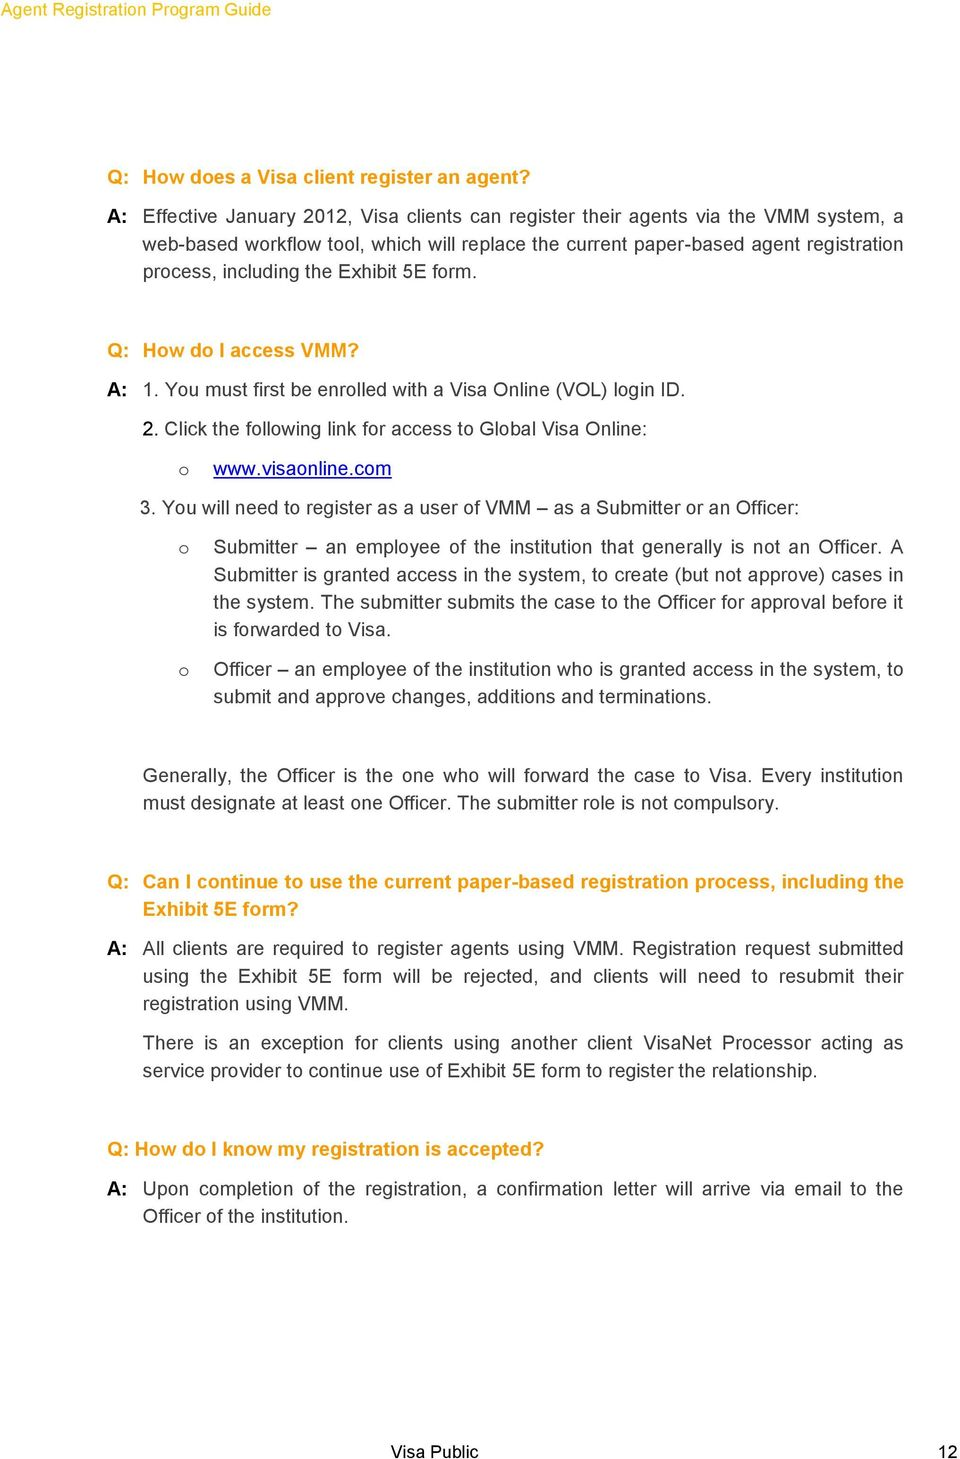 Exhibit 5E form. Q: How do I access VMM? A: 1. You must first be enrolled with a Visa Online (VOL) login ID. 2. Click the following link for access to Global Visa Online: o www.visaonline.com 3.